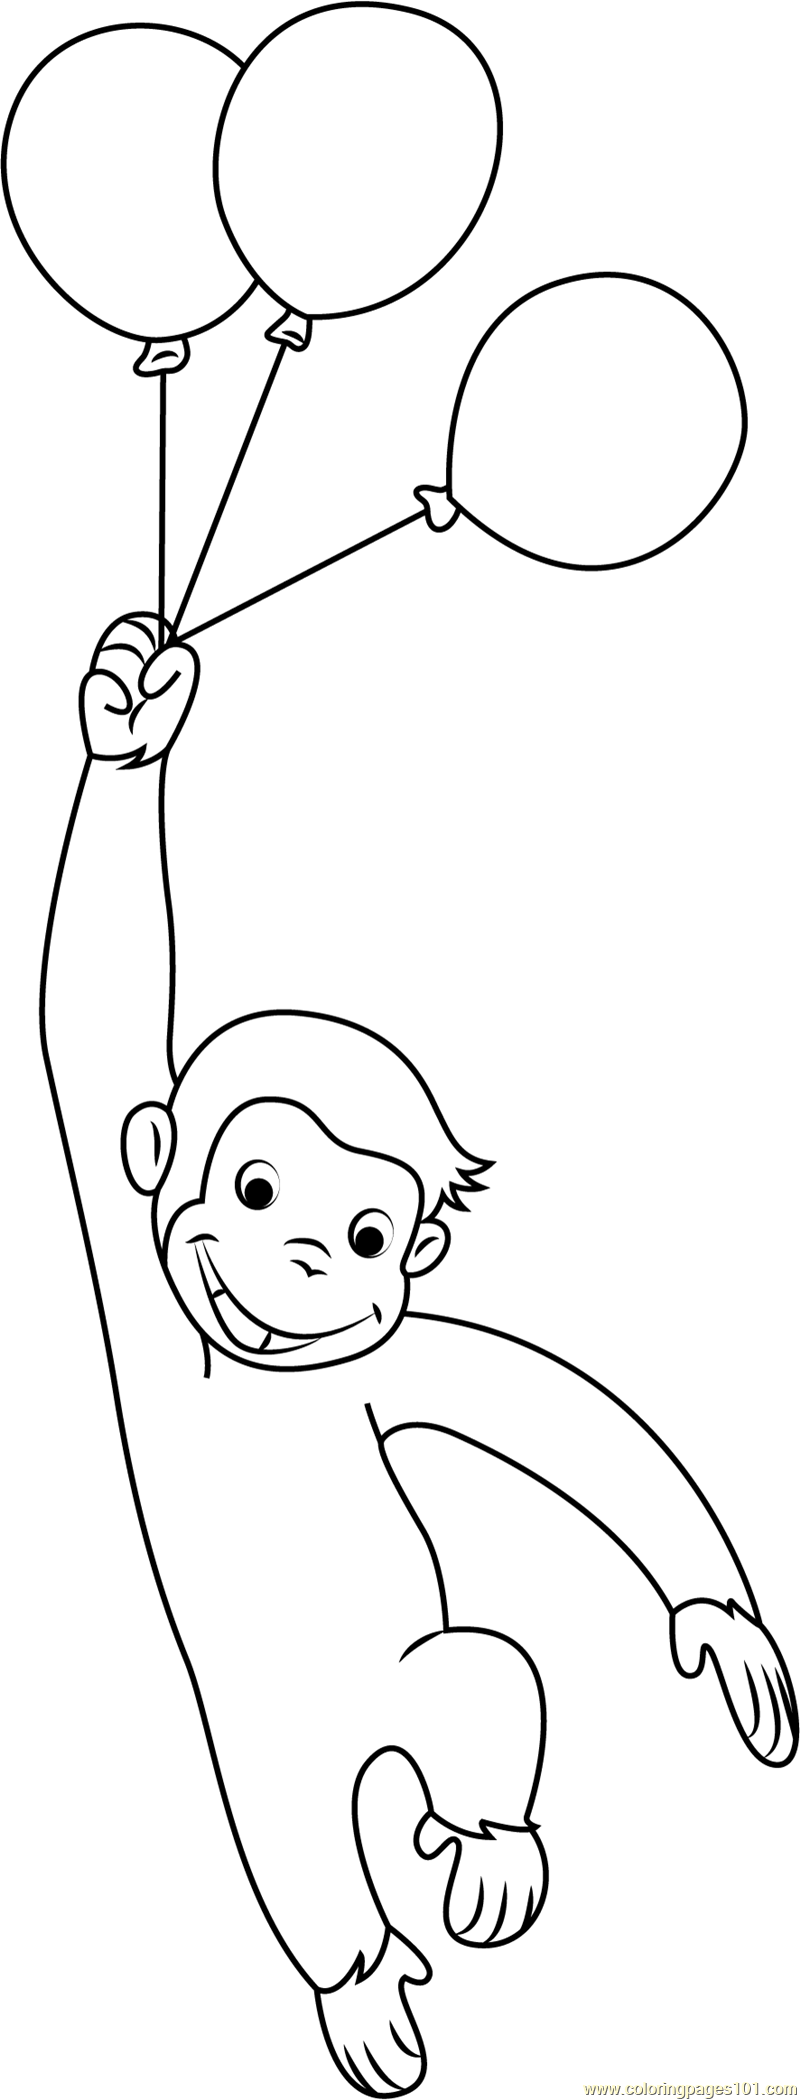 Curious George Monkey Coloring Pages Free Pictures To Pin On Pinterest